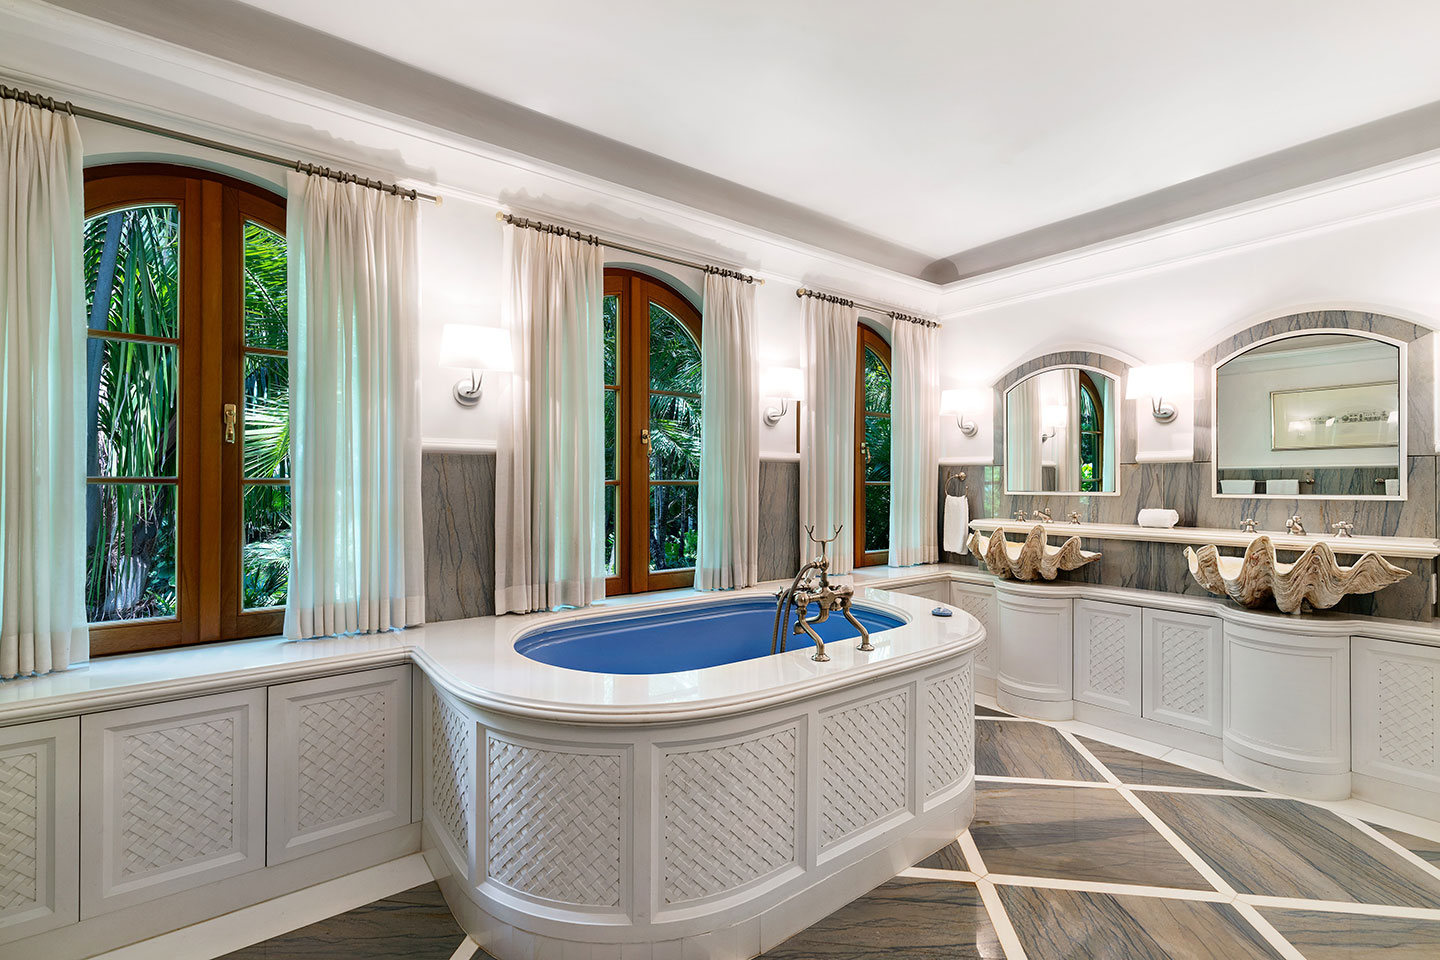 3725 Leafy Way, Coconut Grove, Miami, Florida, USA | A Bathroom | Listed by Dennis Carvajal, Real Estate Agent, ONE Sotheby's International Realty | Finest Residences